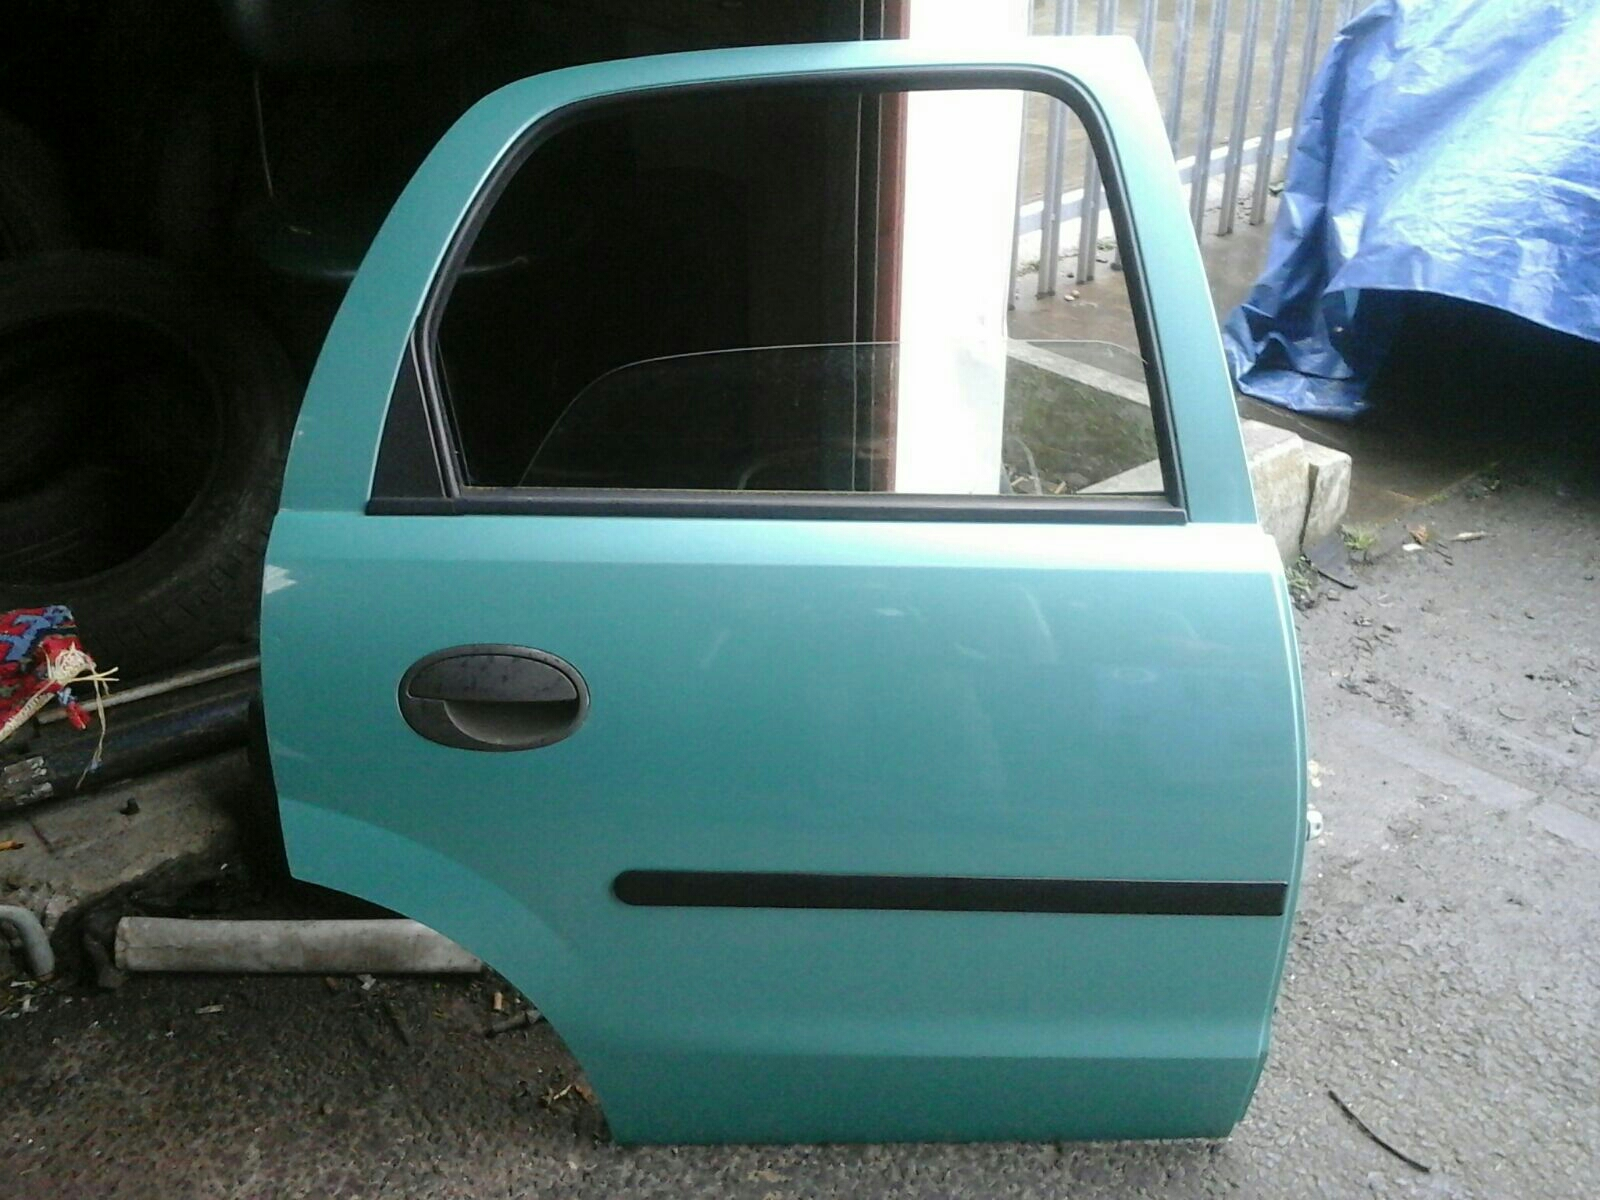 VAUXHALL CORSA C DRIVERS REAR DOOR GREEN 3QU/397 00-06 & VAUXHALL CORSA C DRIVERS REAR DOOR GREEN 3QU/397 00-06 used and ...